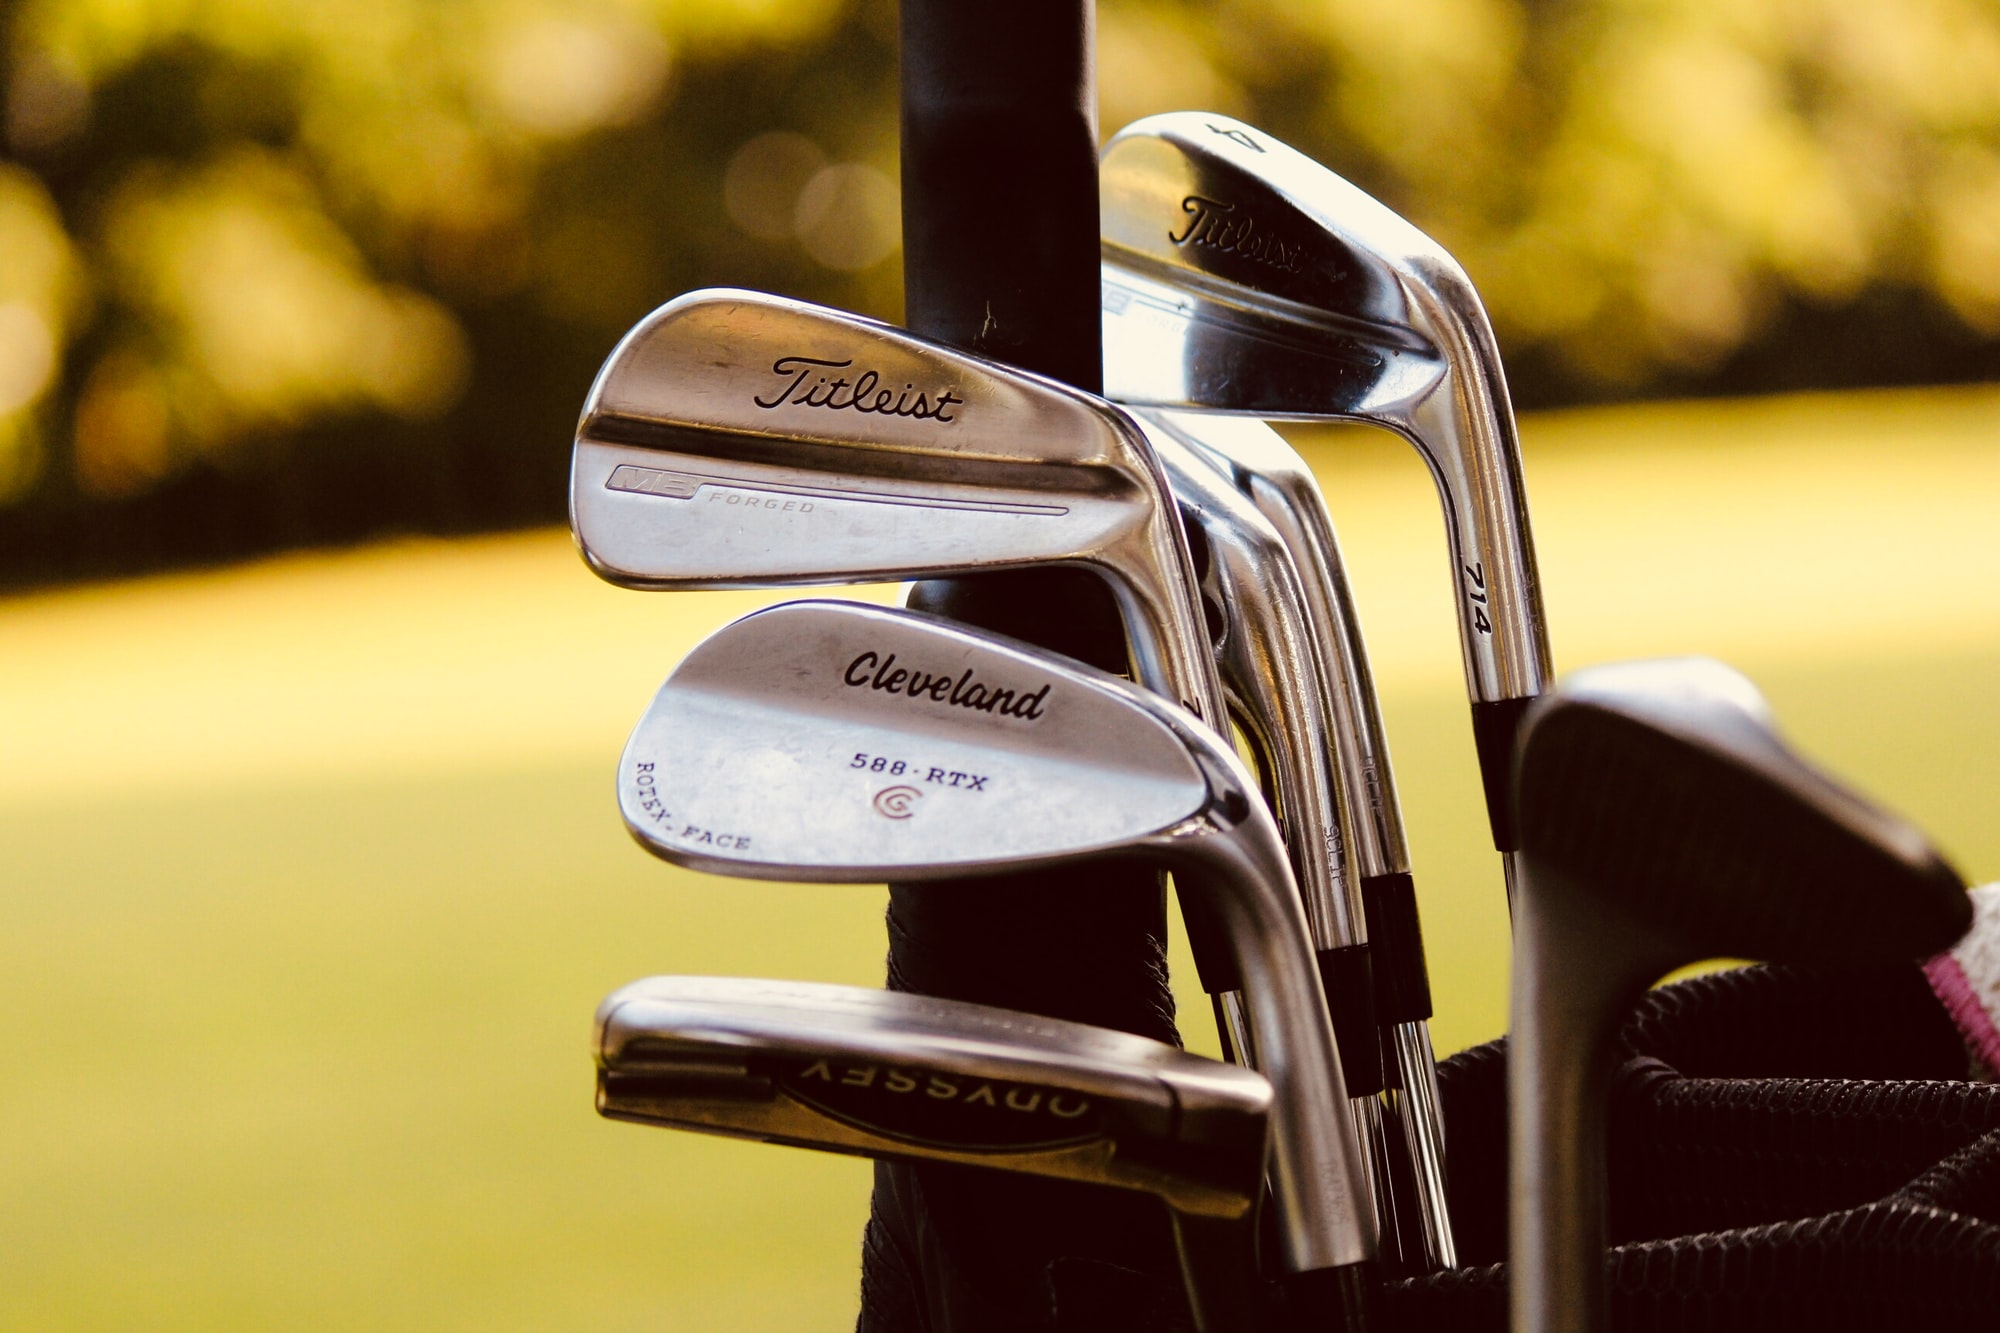 Daniel Goleman's Golf Clubs—A Rough Guide to Leadership Models and Theories